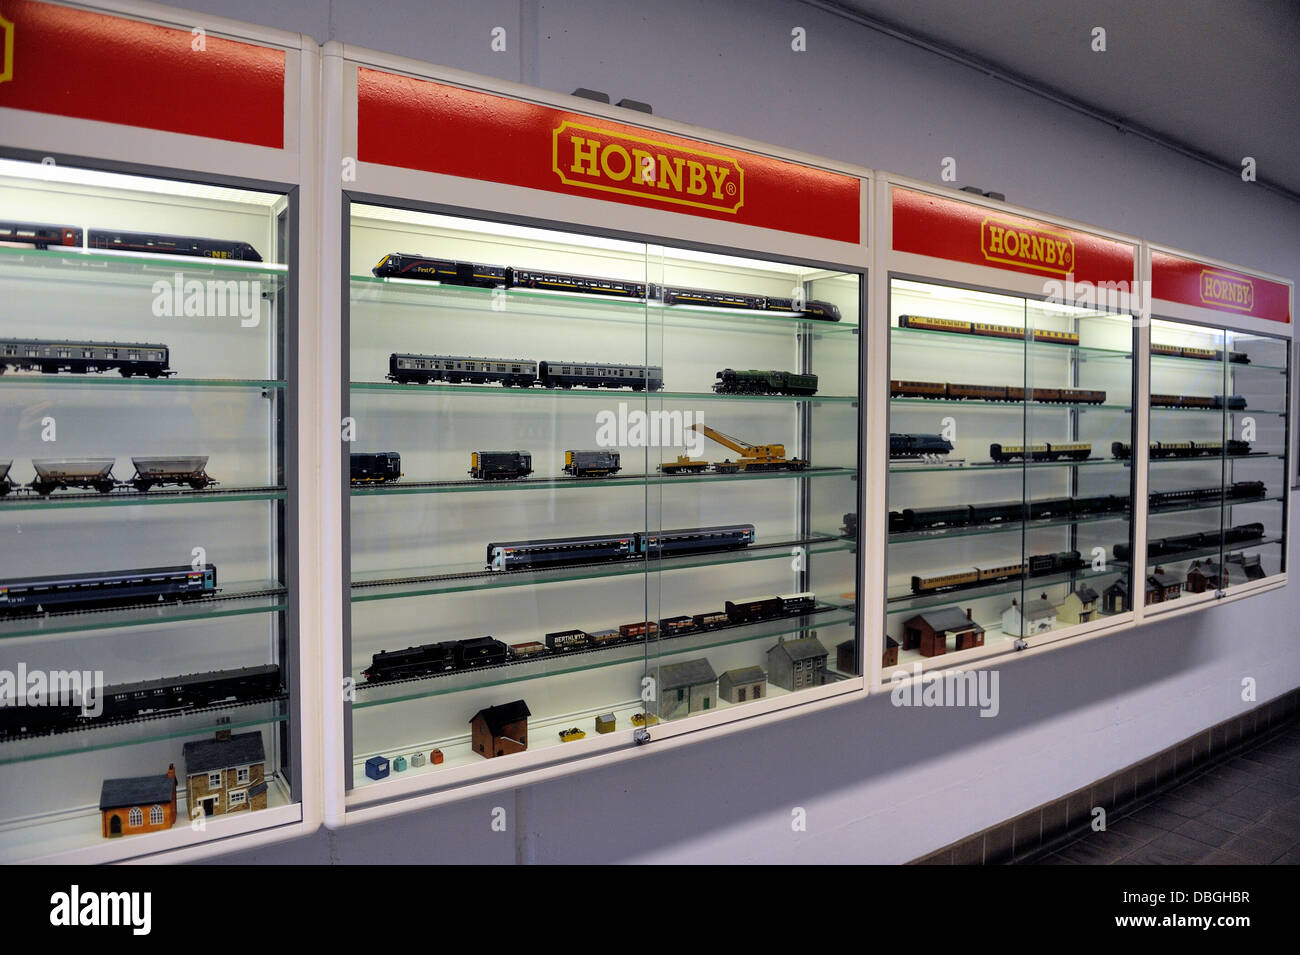 Hornby Model Trains In A Display Case National Railway